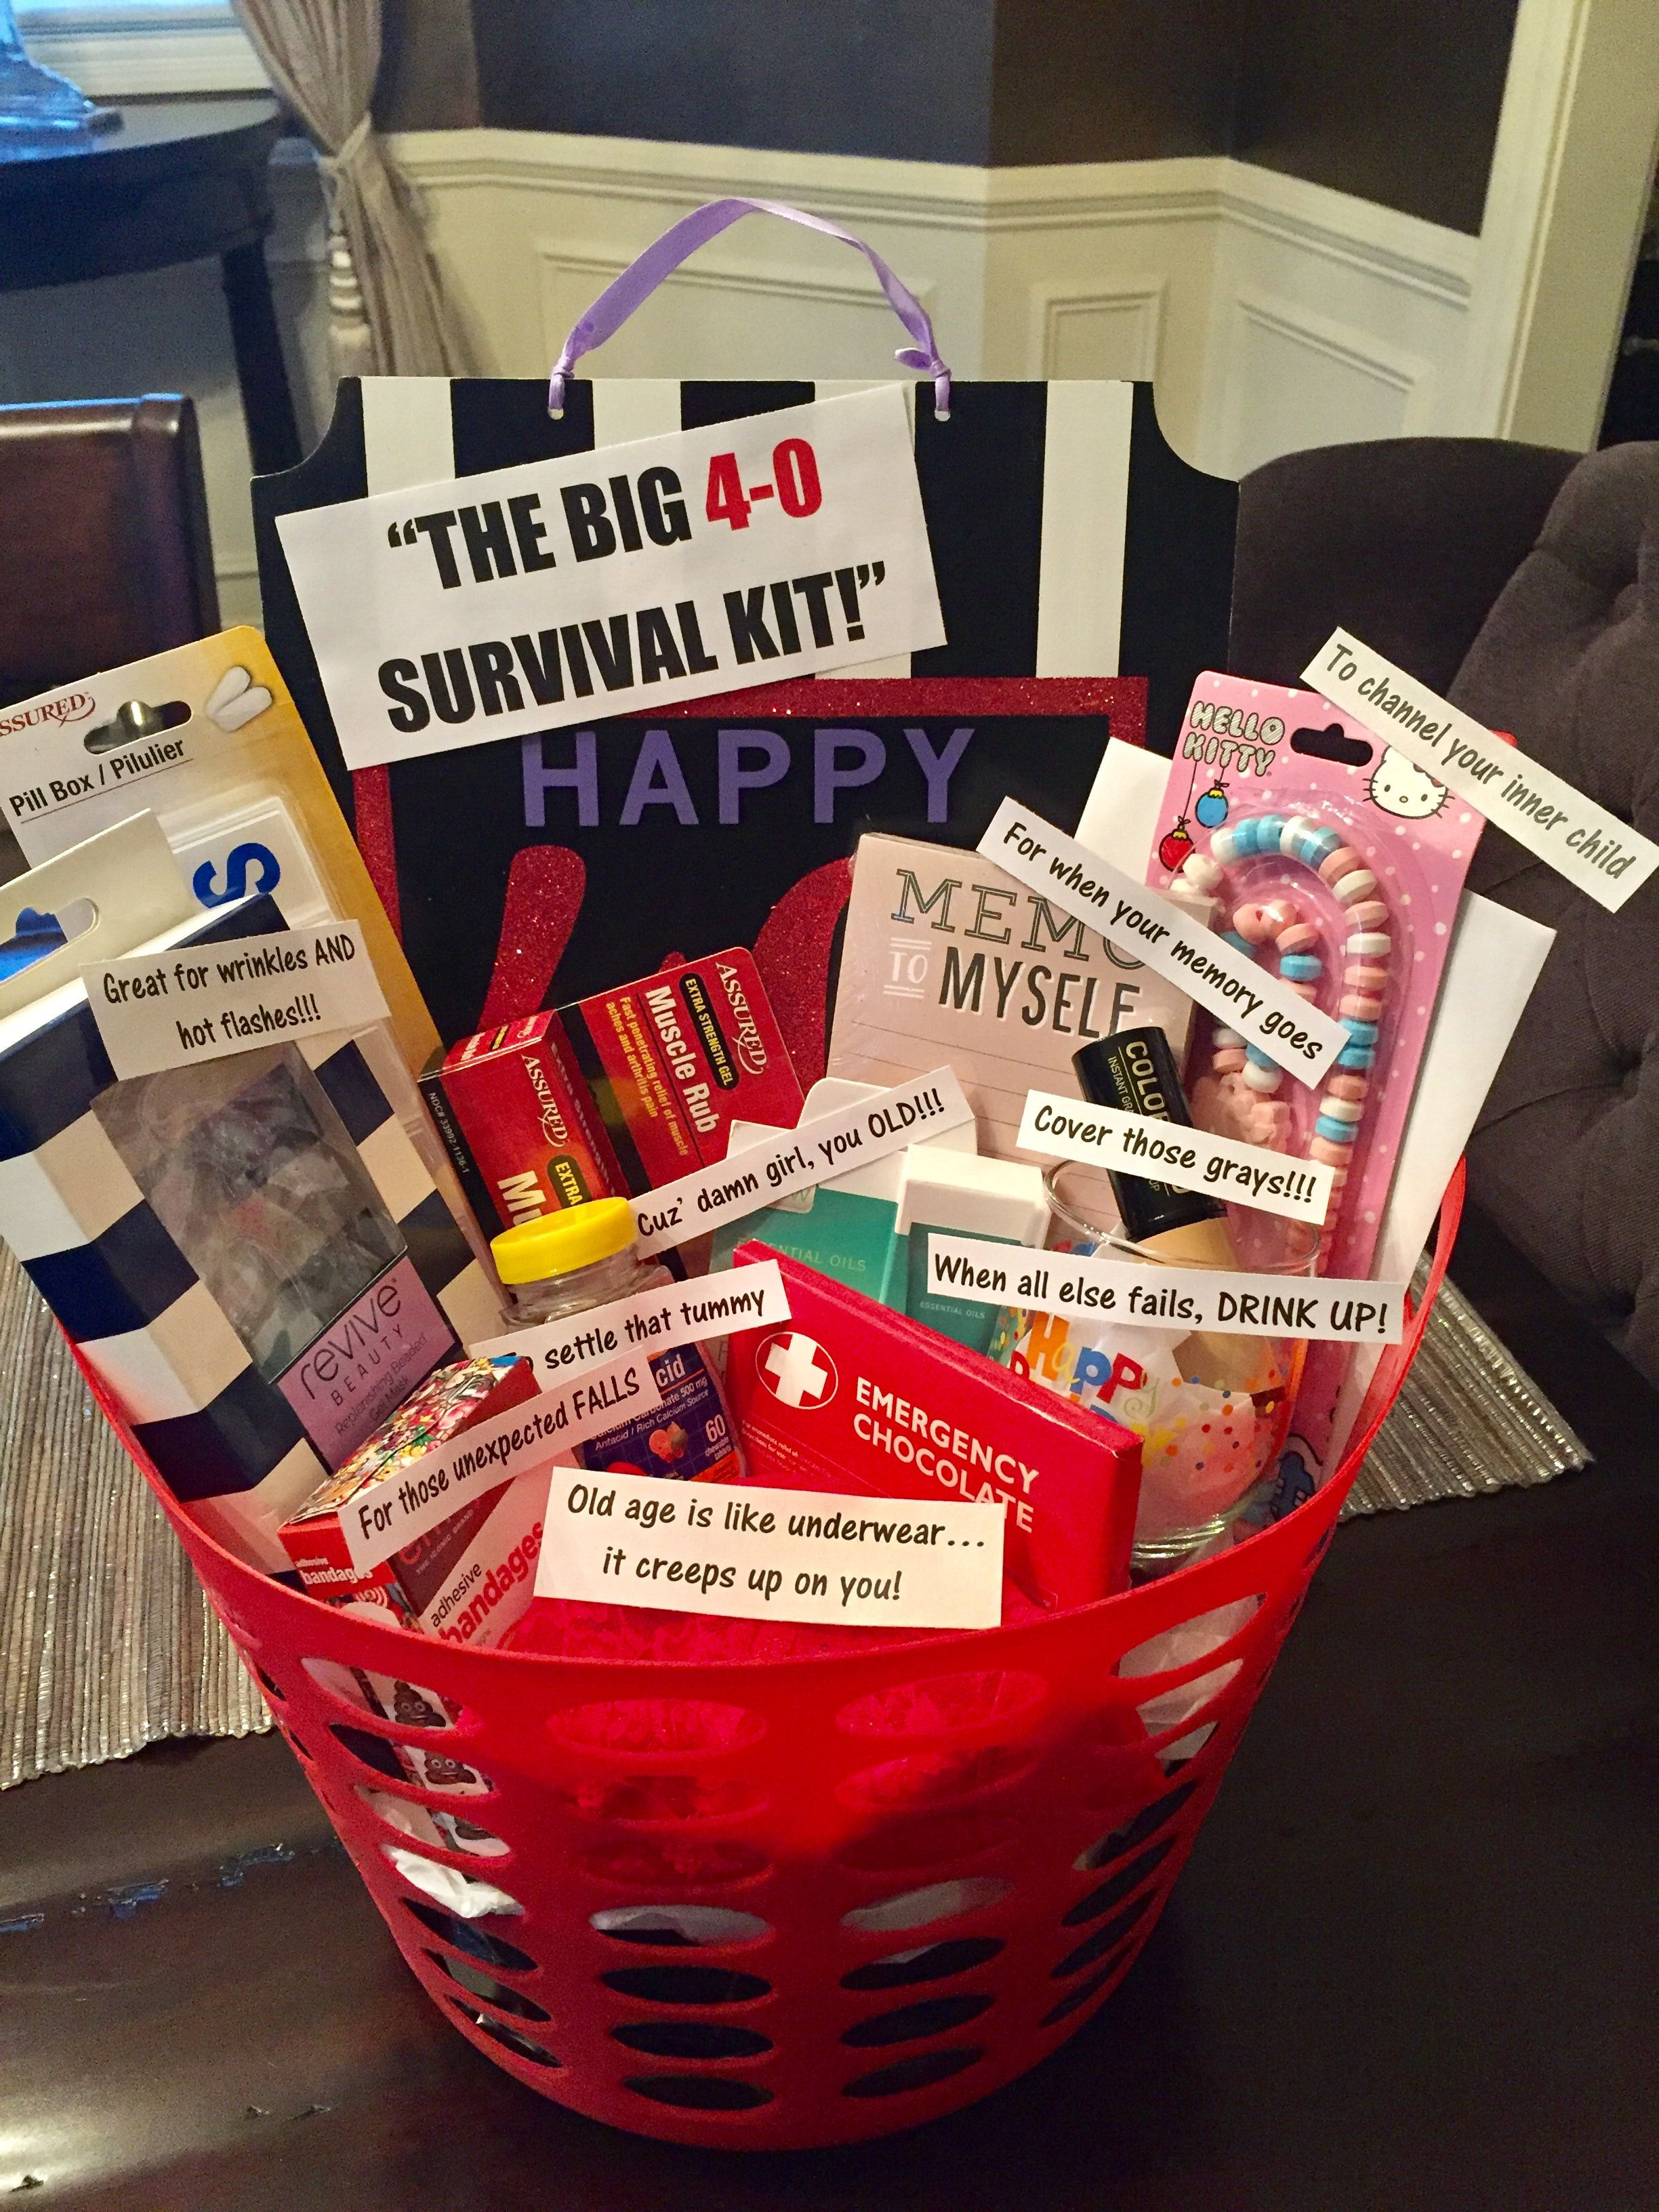 Best ideas about Birthday Gifts From Stores . Save or Pin 40th birthday survival kit for a woman most things from Now.